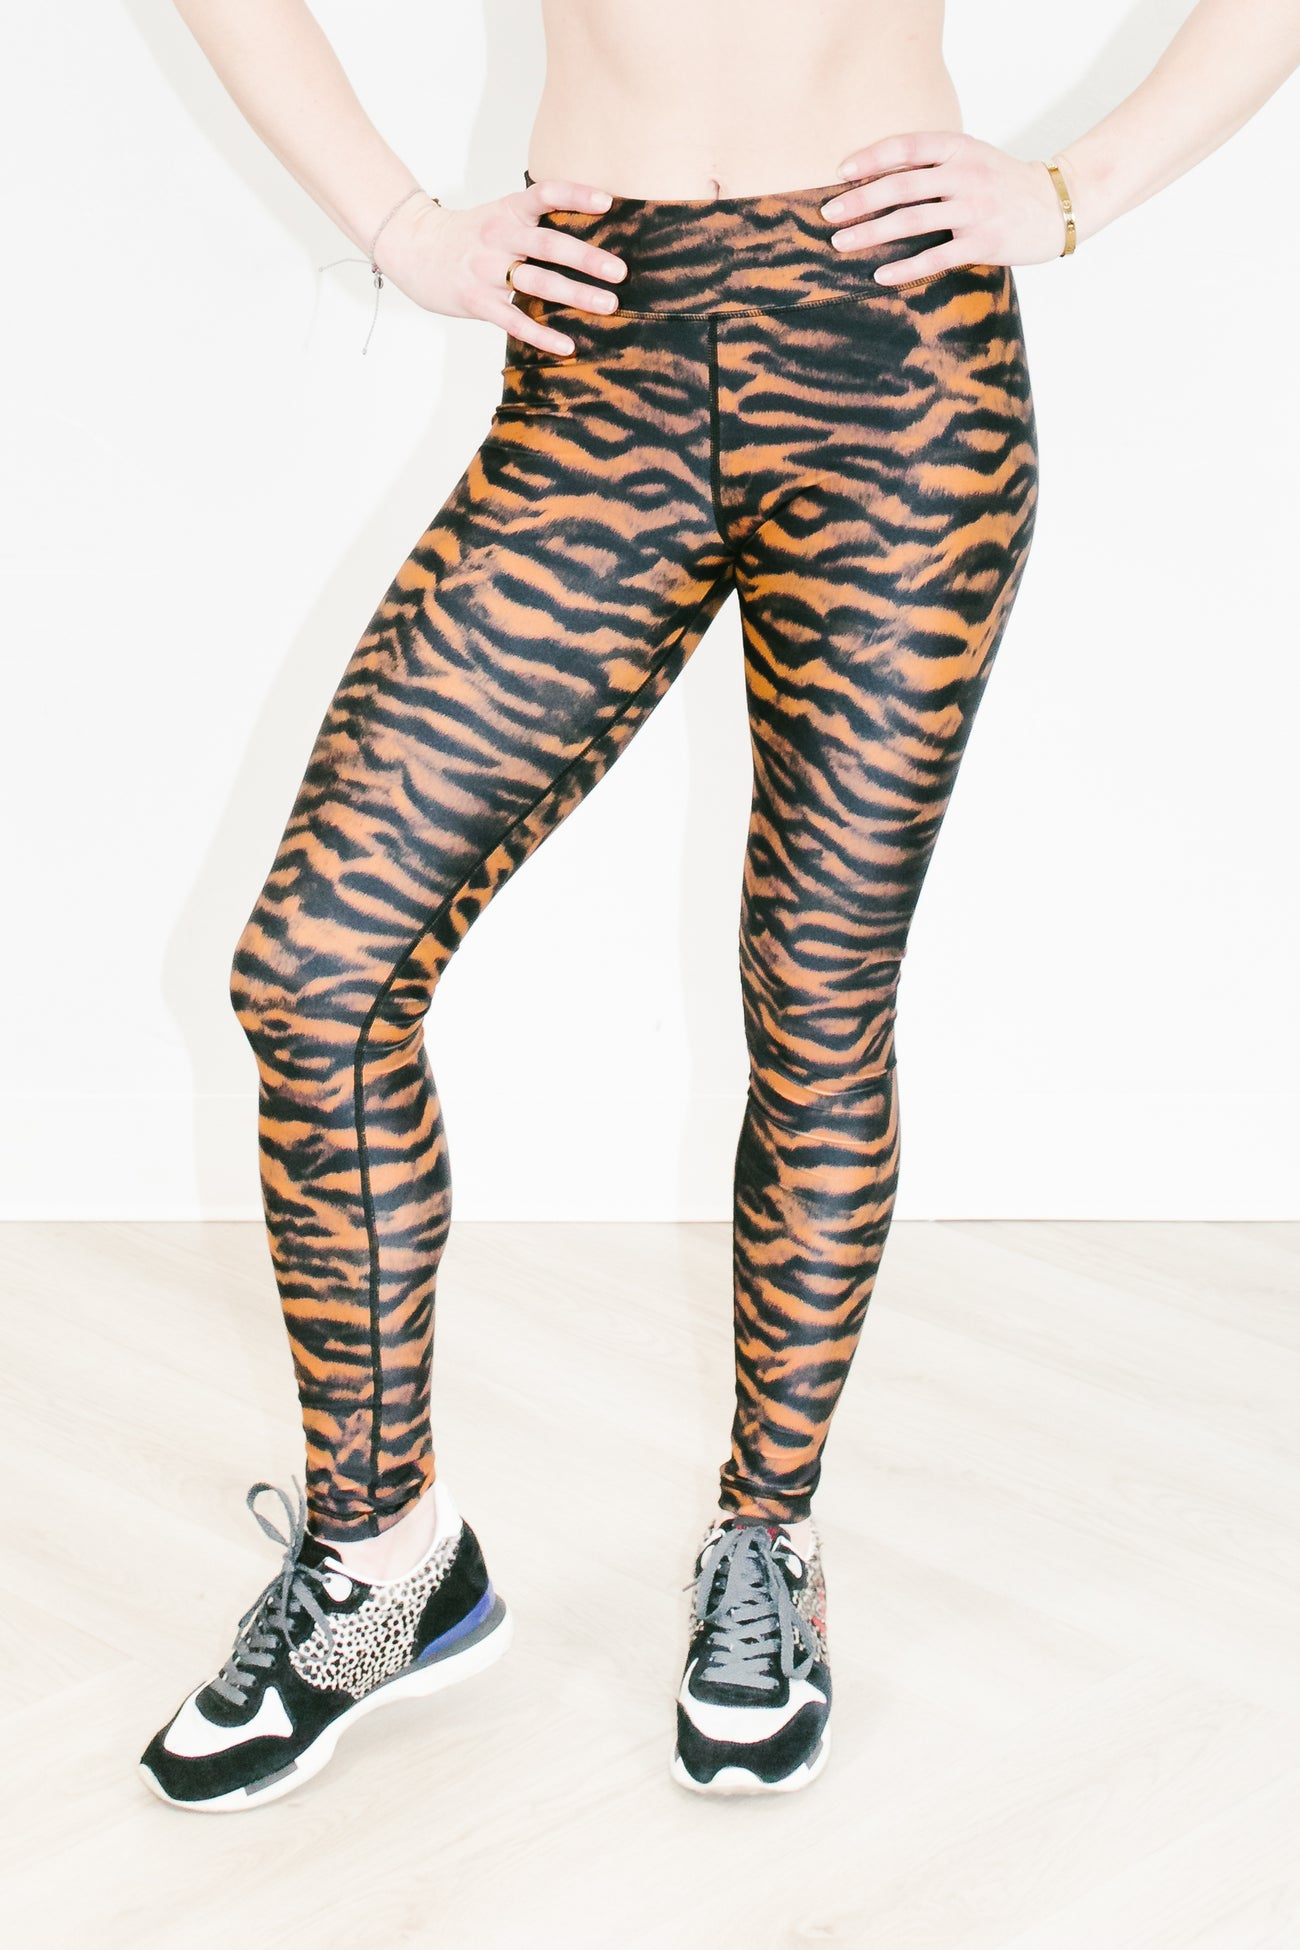 Tiger Yoga Pant in Tiger Leopard